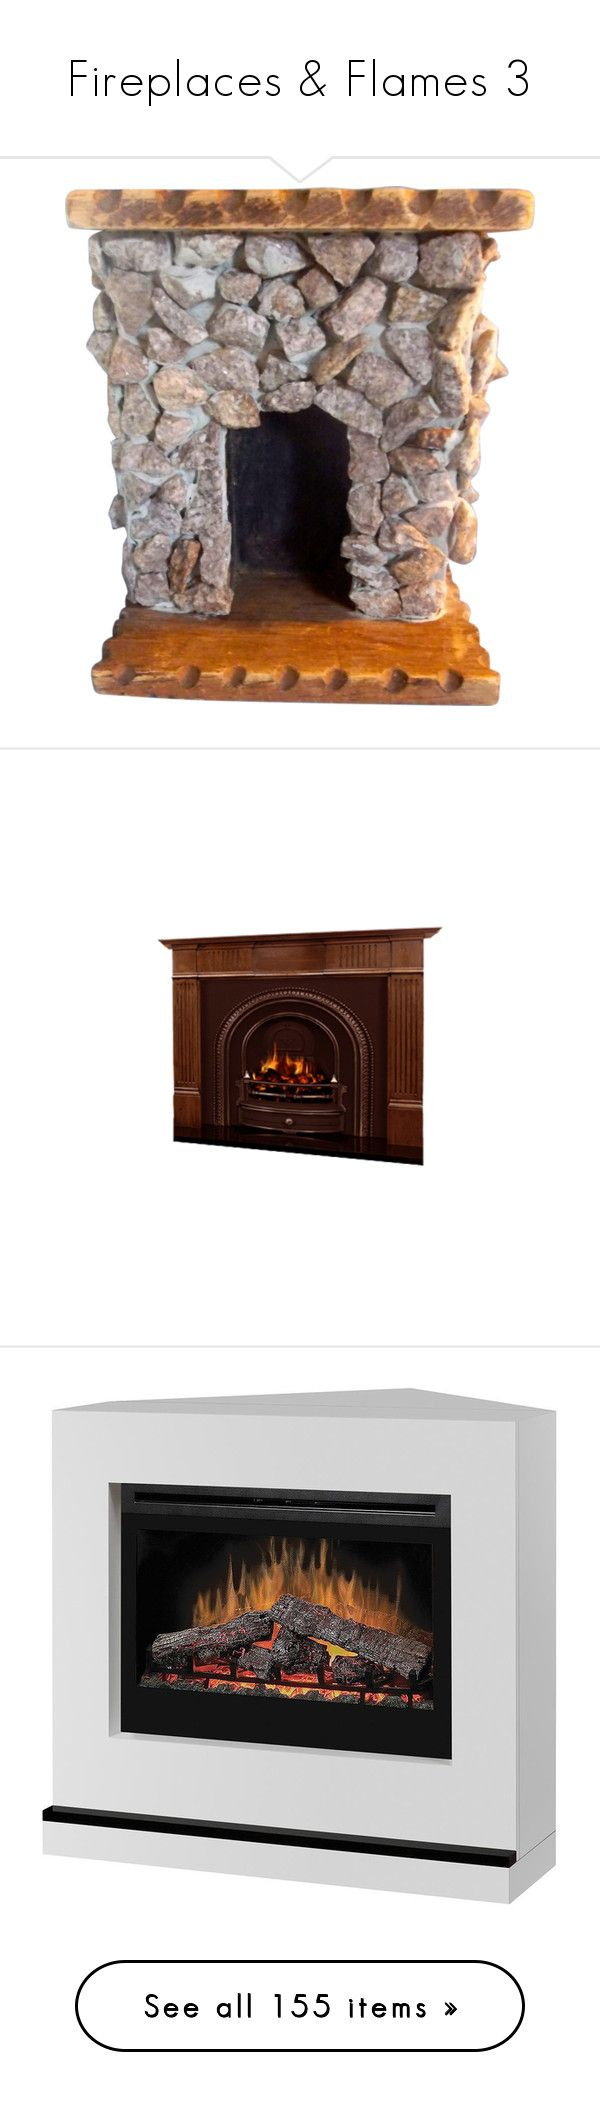 """""""Fireplaces & Flames 3"""" by mysfytdesigns ❤ liked on Polyvore featuring home, home decor, antique home decor, fireplaces, fireplace accessories, contemporary electric fireplace, contemporary home decor, contemporary home accessories, dimplex and dimplex electric fireplace"""